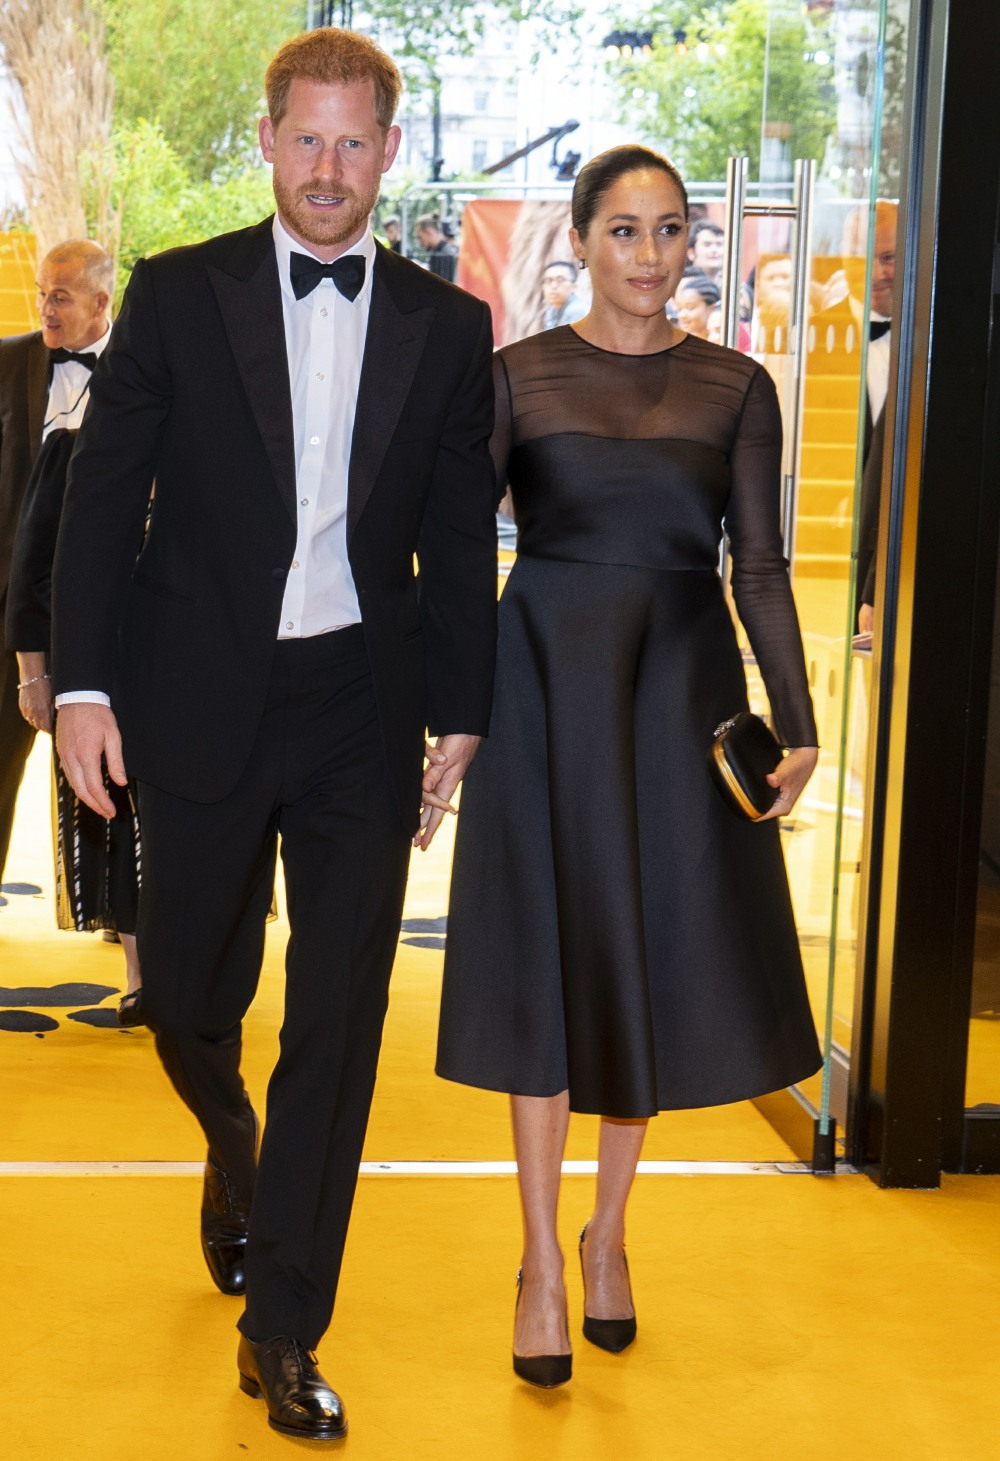 Britain's Prince Harry, Duke of Sussex (L) and Britain's Meghan, Duchess of Sussex (R) arrive to attend the European premiere of the film The Lion King in London on July 14, 2019.